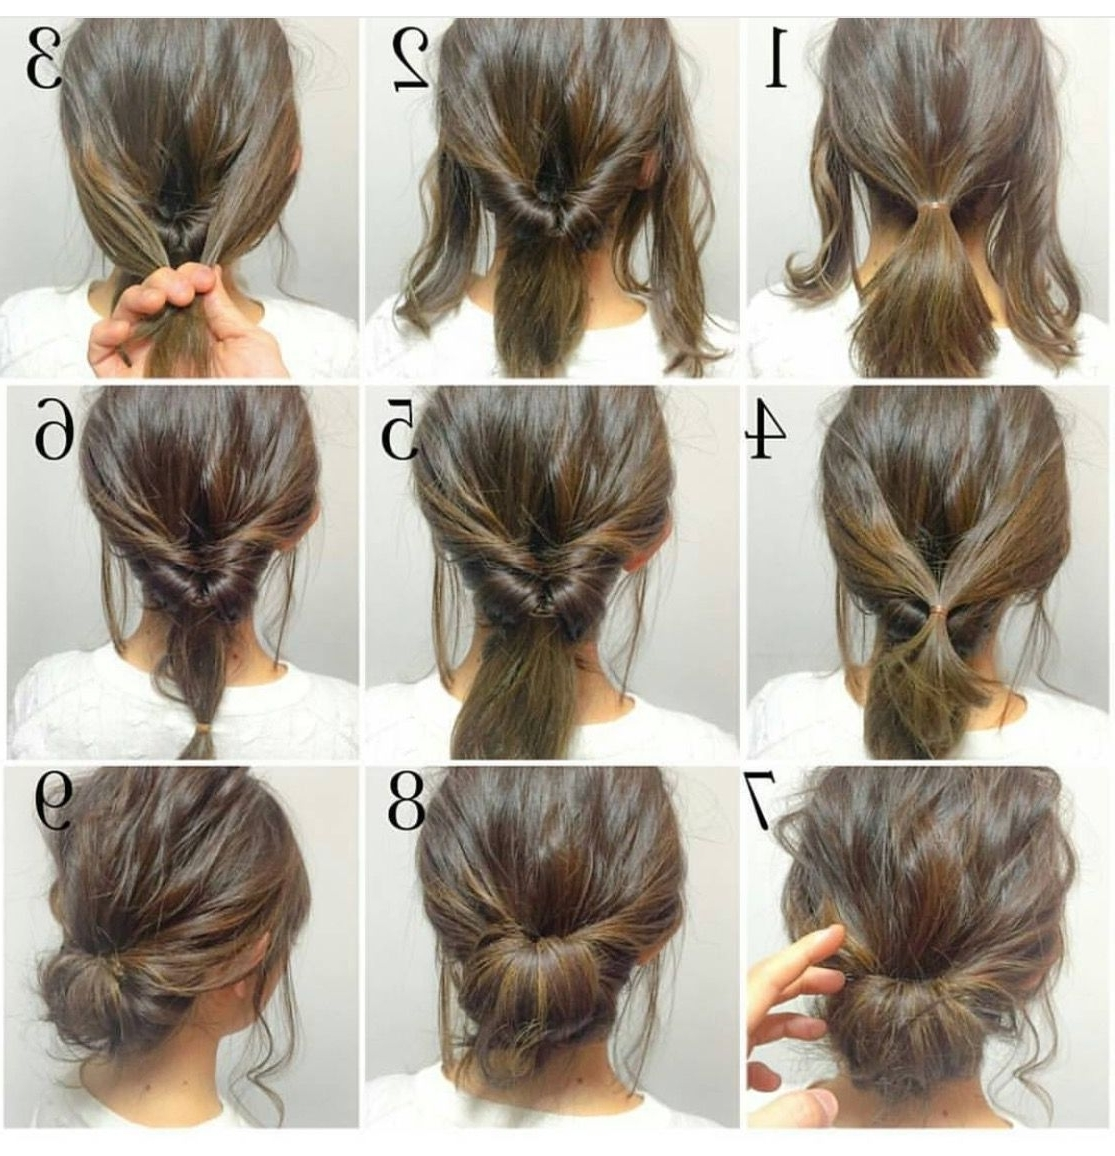 Easy, Hope This Works Out Quick Morning Hair! | • H A I R Pertaining To Easy Do It Yourself Updo Hairstyles For Medium Length Hair (View 9 of 15)